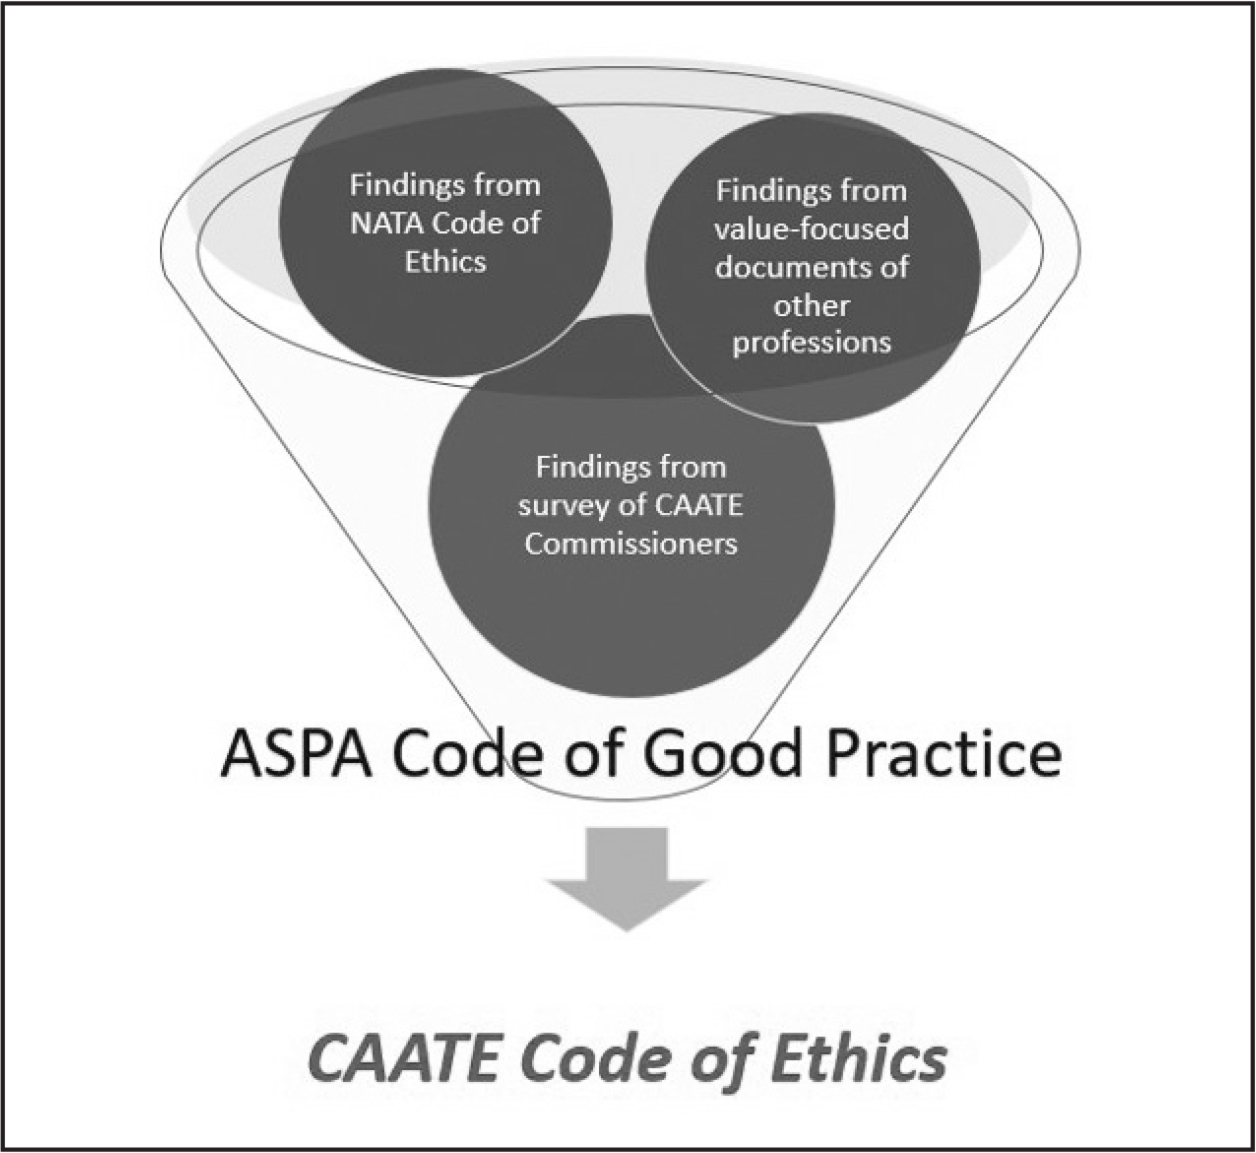 Developing the Commission on Accreditation of Athletic Training Education (CAATE) Code of Ethics. NATA = National Athletic Trainers' Association; ASPA = Association of Specialized Professional Accreditors